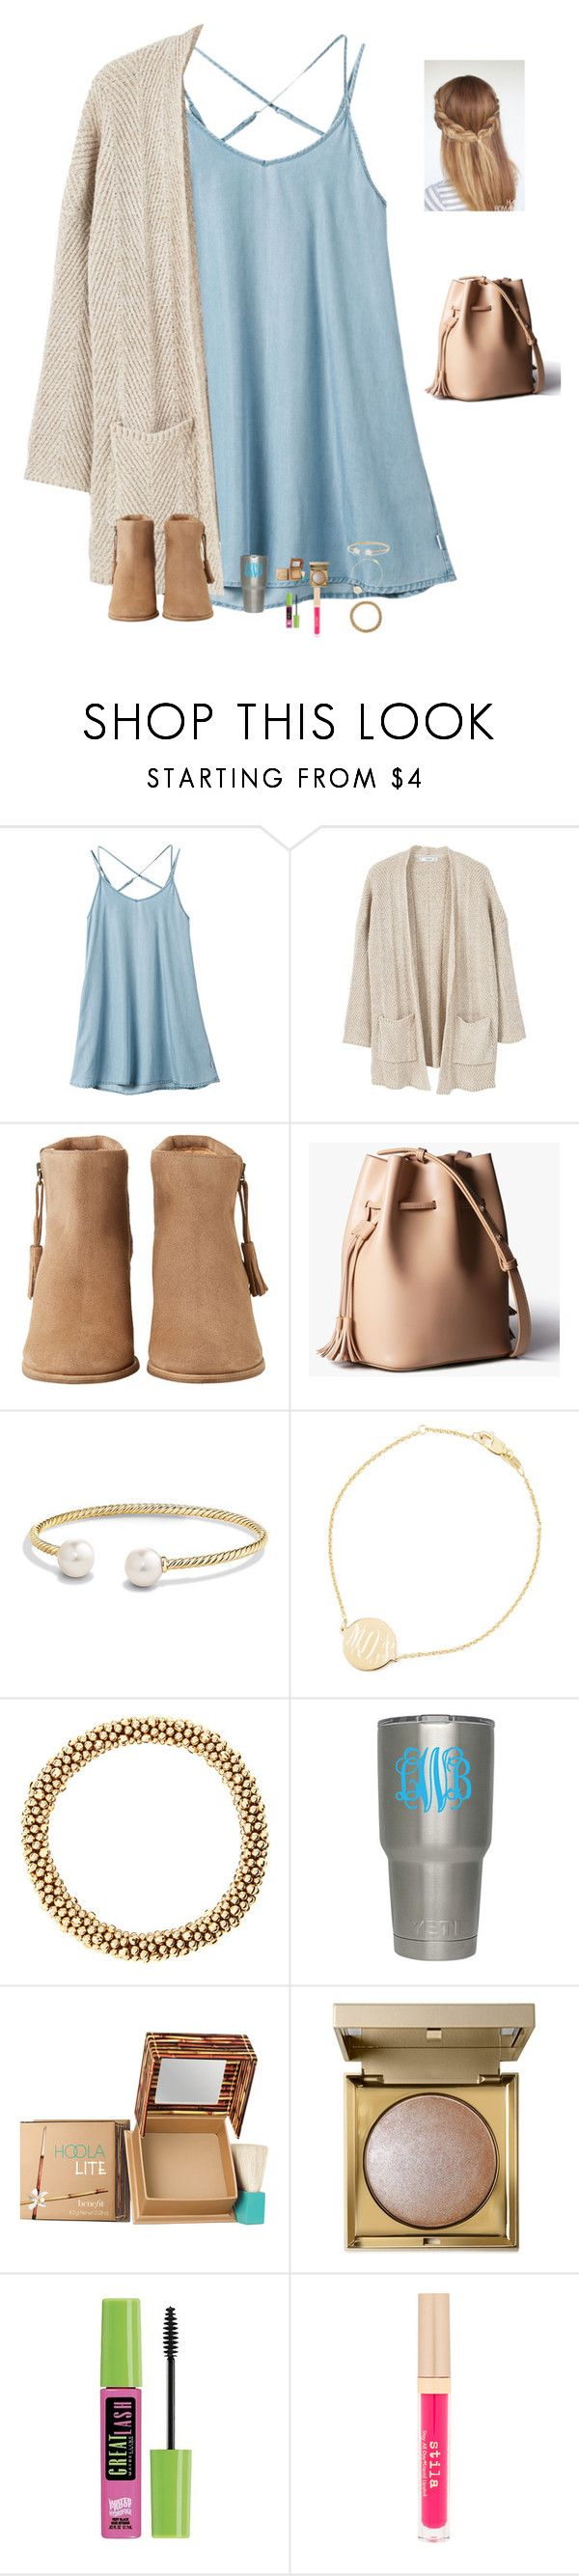 """I really love goldfish"" by raquate1232 ❤ liked on Polyvore featuring RVCA, MANGO, HOWSTY, David Yurman, Sarah Chloe, Benefit, Stila and Maybelline"